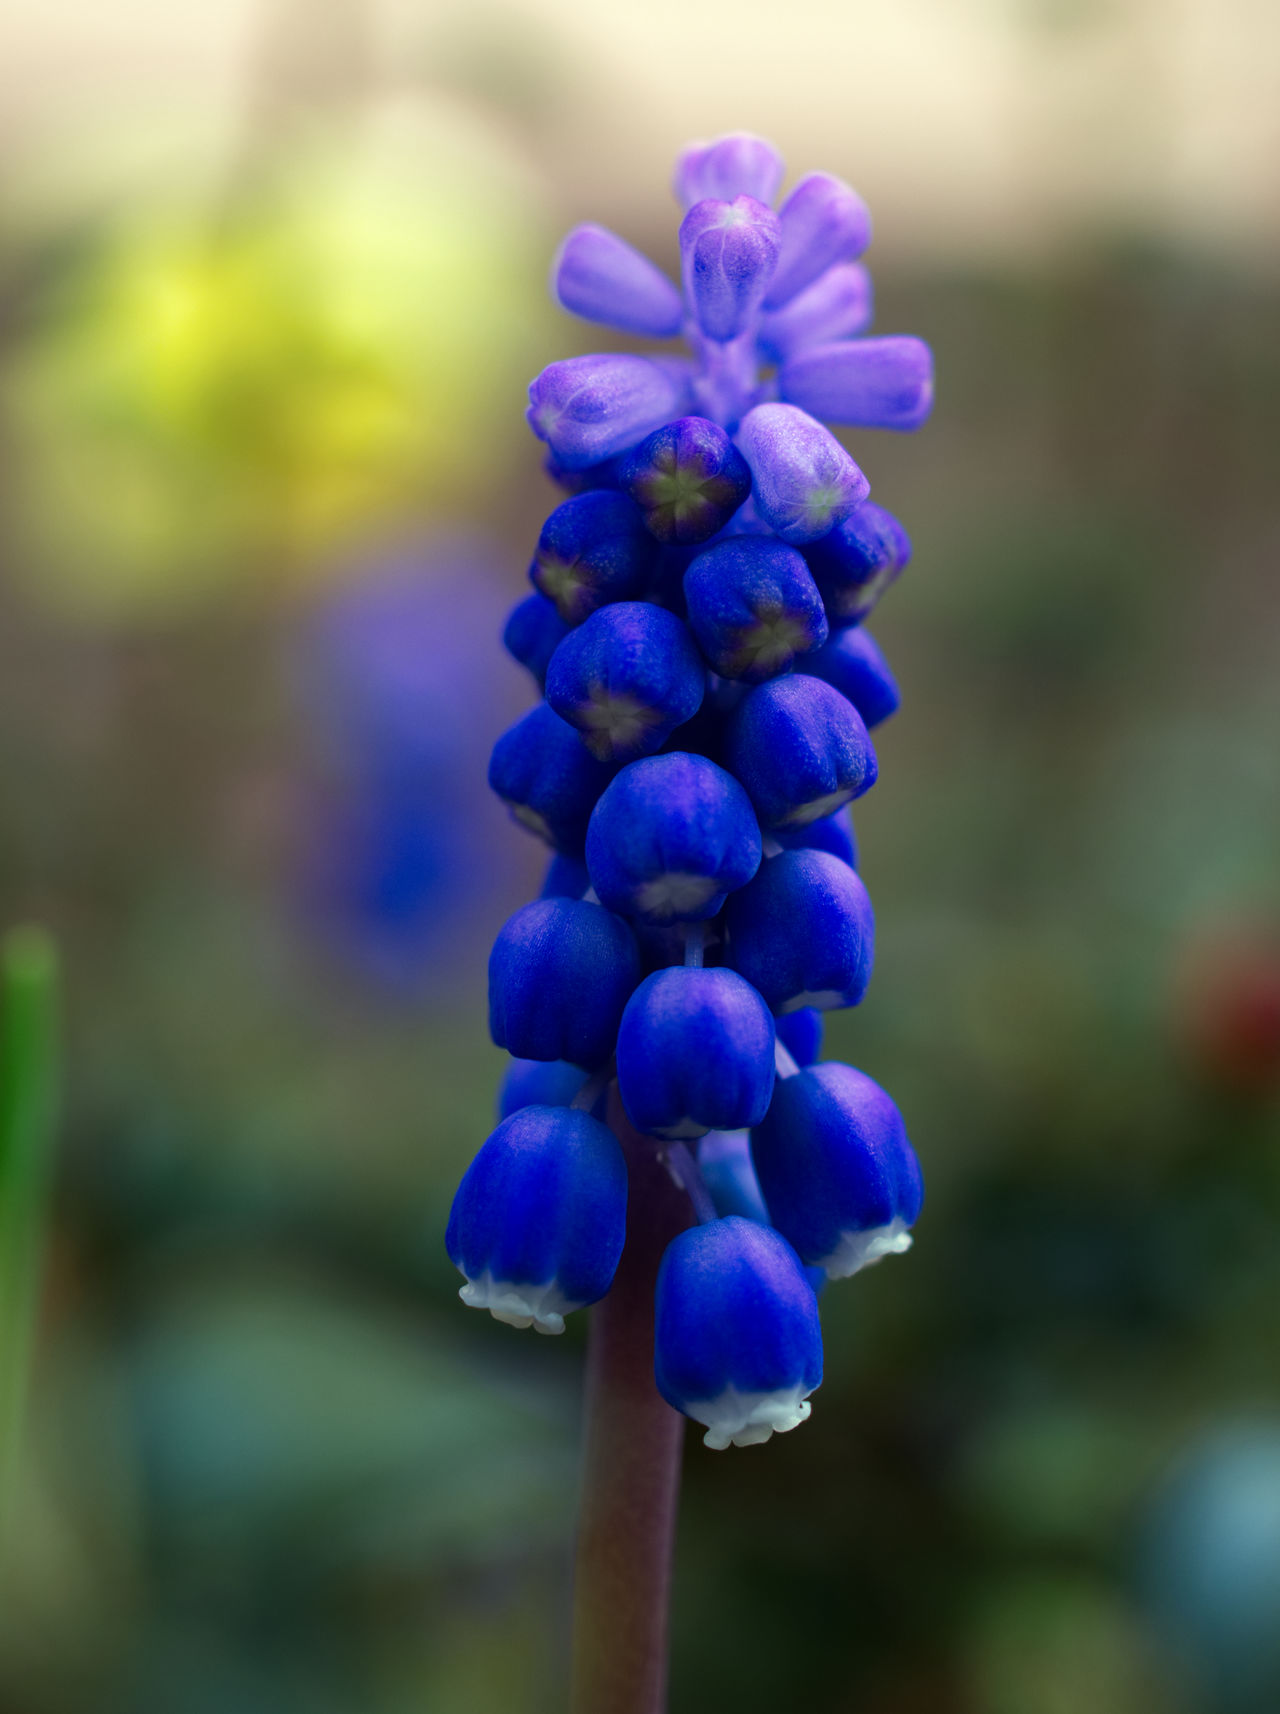 Beauty In Nature Blooming Blue Close-up Day Flower Flower Head Focus On Foreground Fragility Freshness Growth Hyacinth Nature No People Outdoors Plant Purple